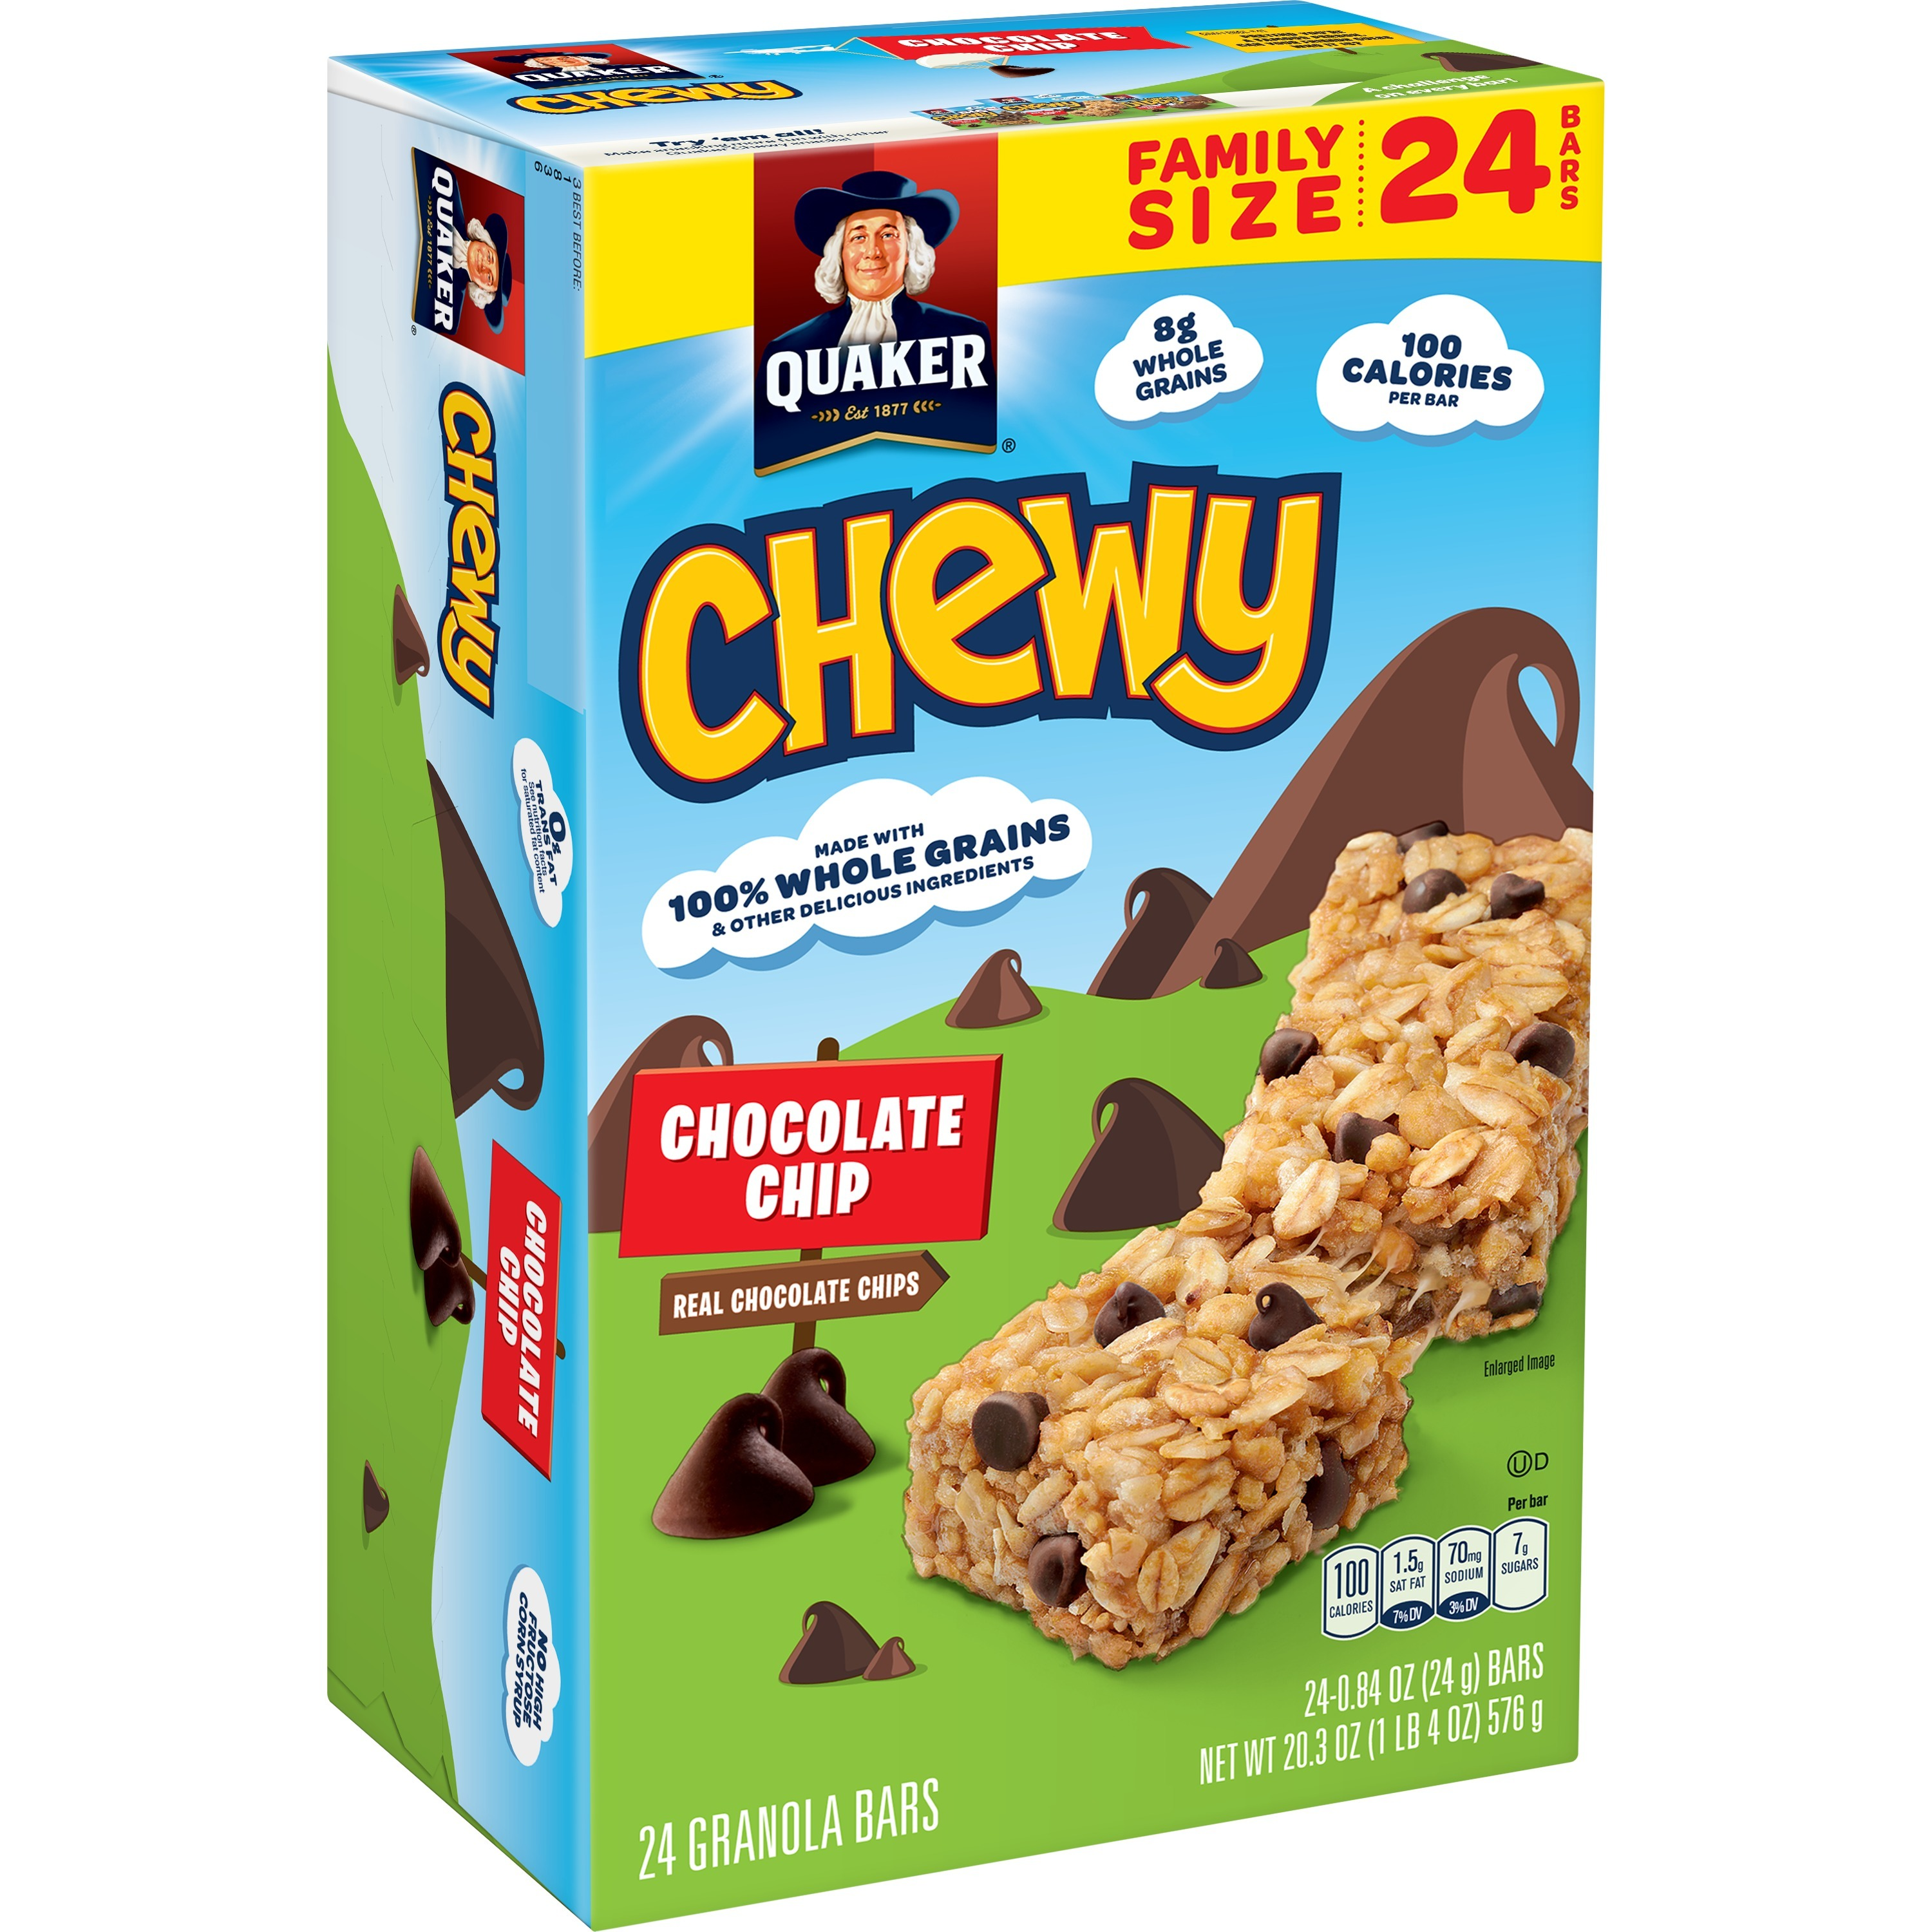 (3 Pack) Quaker Chewy Granola Bars, Chocolate Chip, 0.84 oz Bars, 24 Count